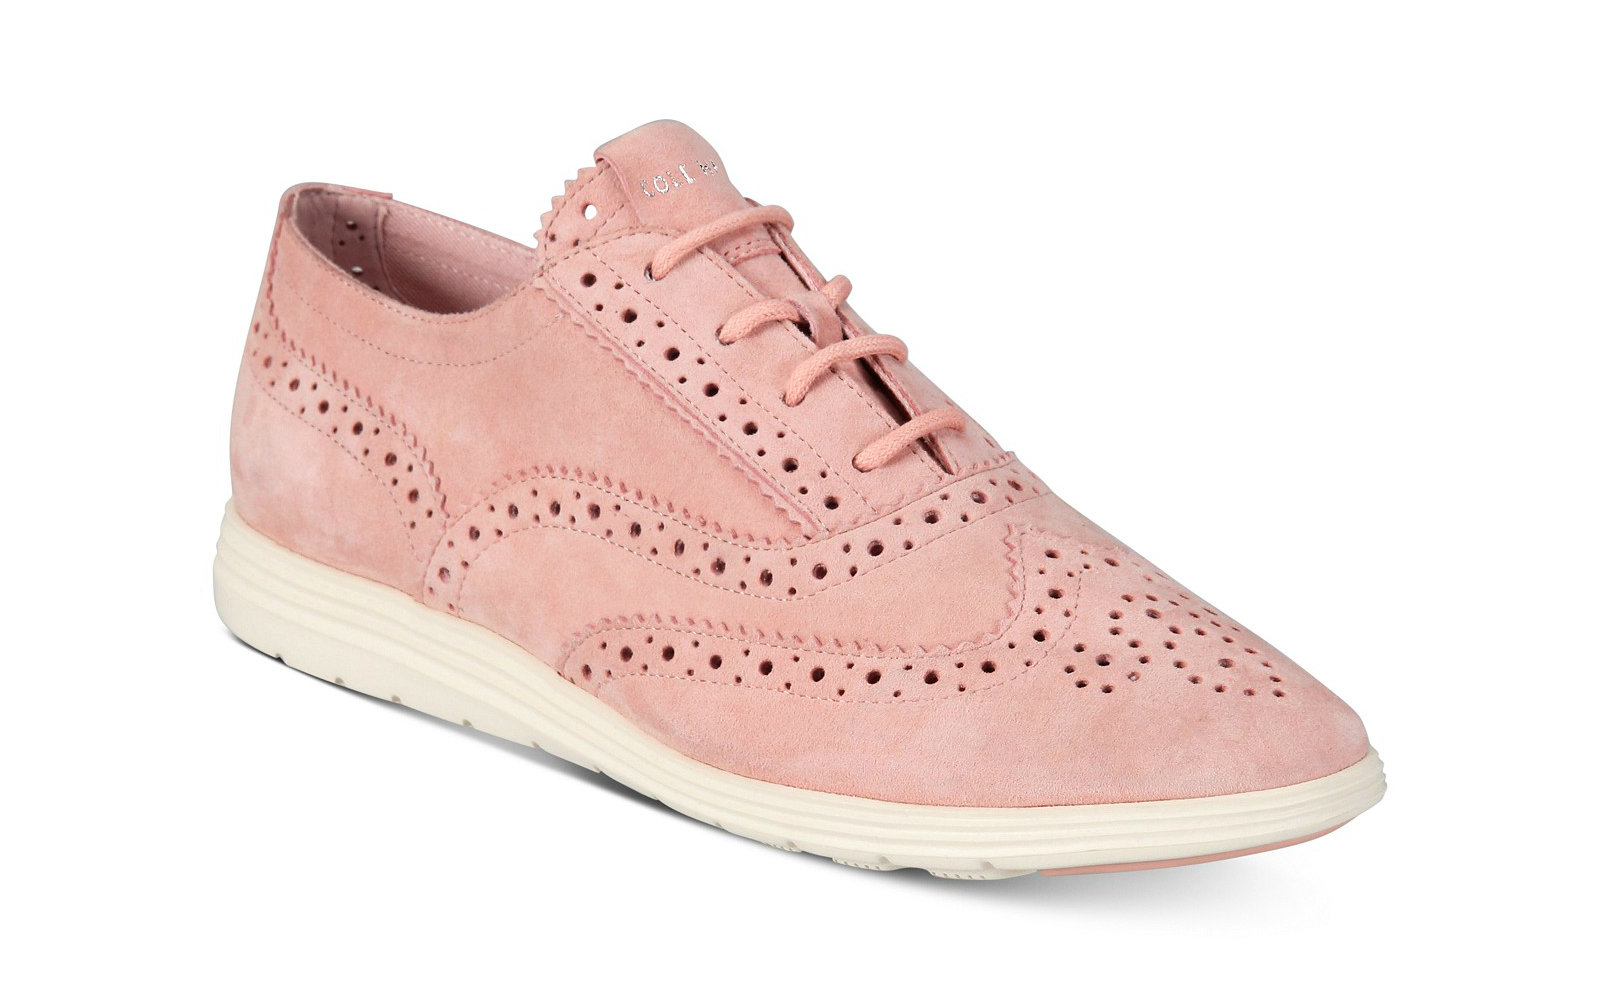 What Is The Best Walking But Stylish Shoes